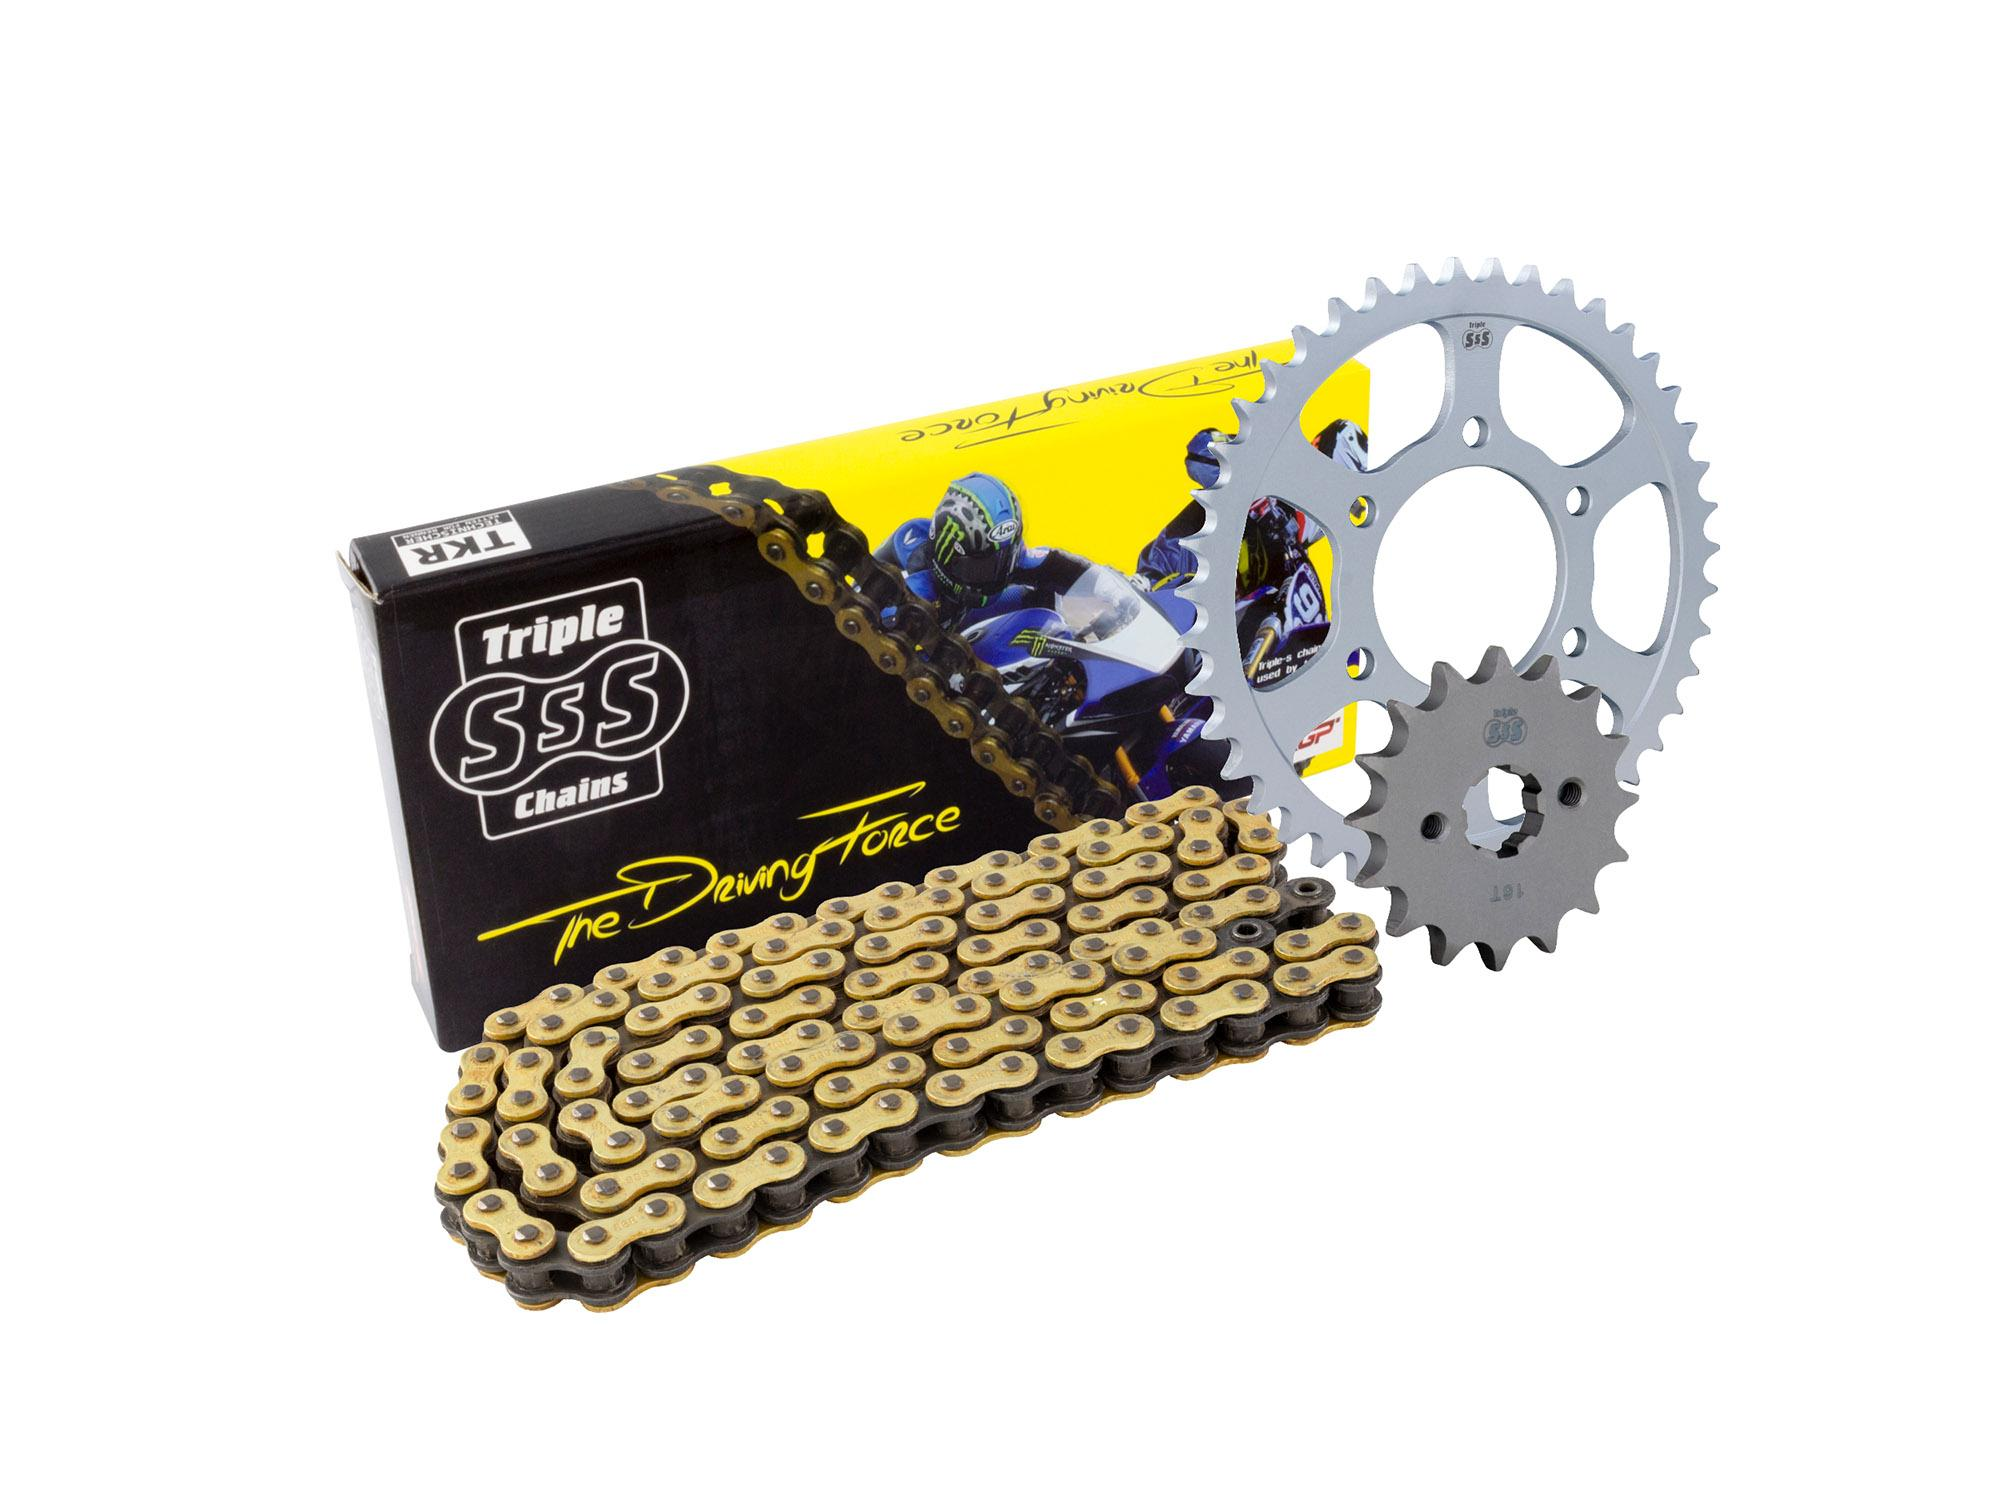 Honda VT750 DC Shadow Spirit 01-07 Chain & Sprocket Kit: 17T Front, 42T Rear, HD O-Ring Gold Chain 525H 122Link